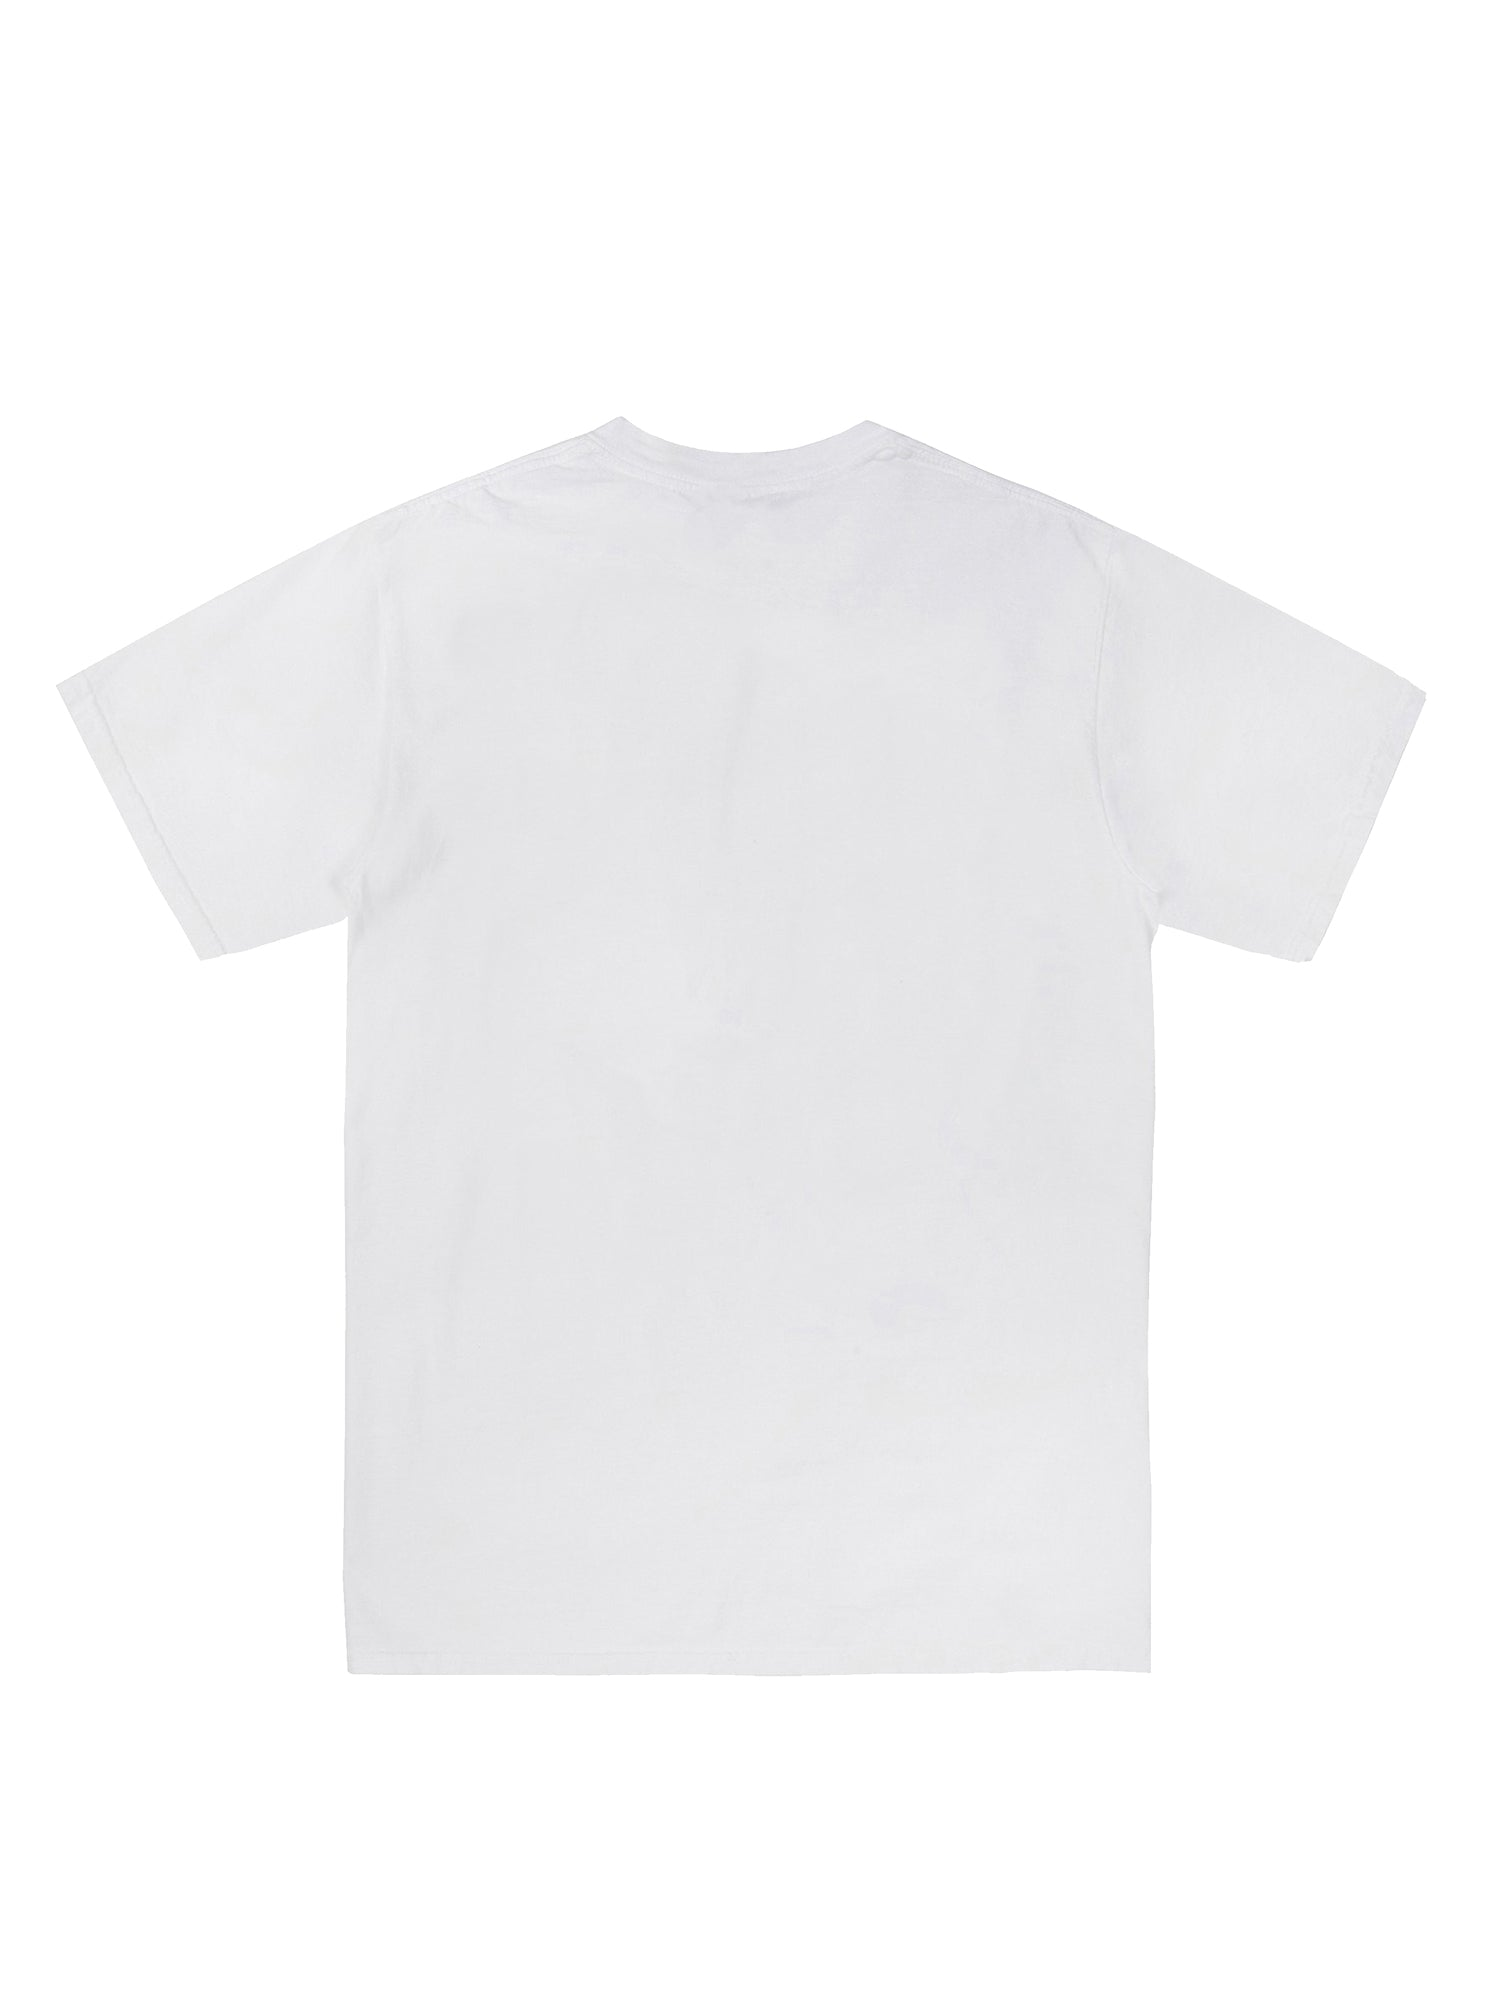 Mindful Tee, White